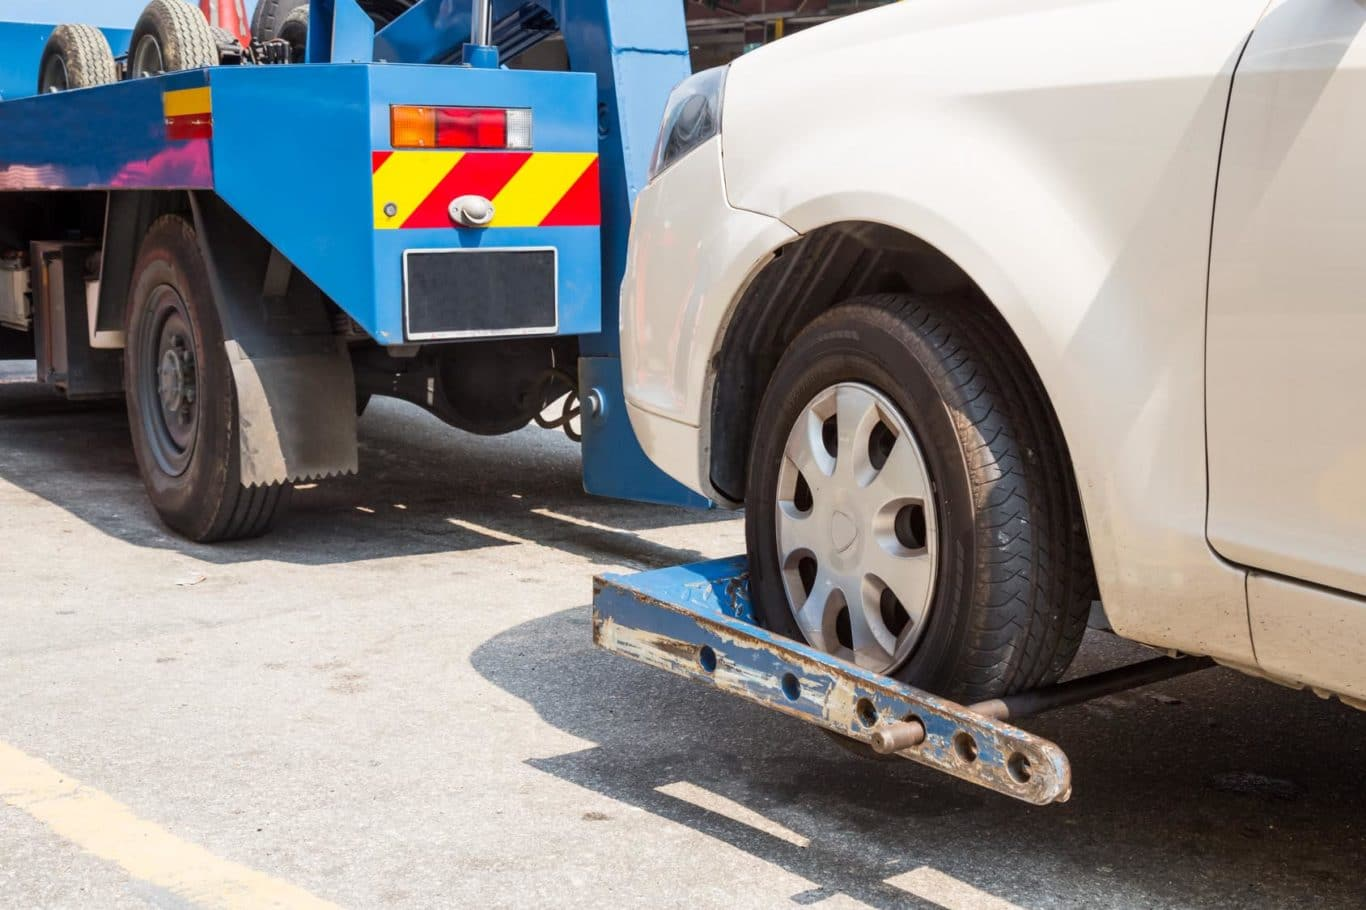 Naas expert Breakdown Assistance services